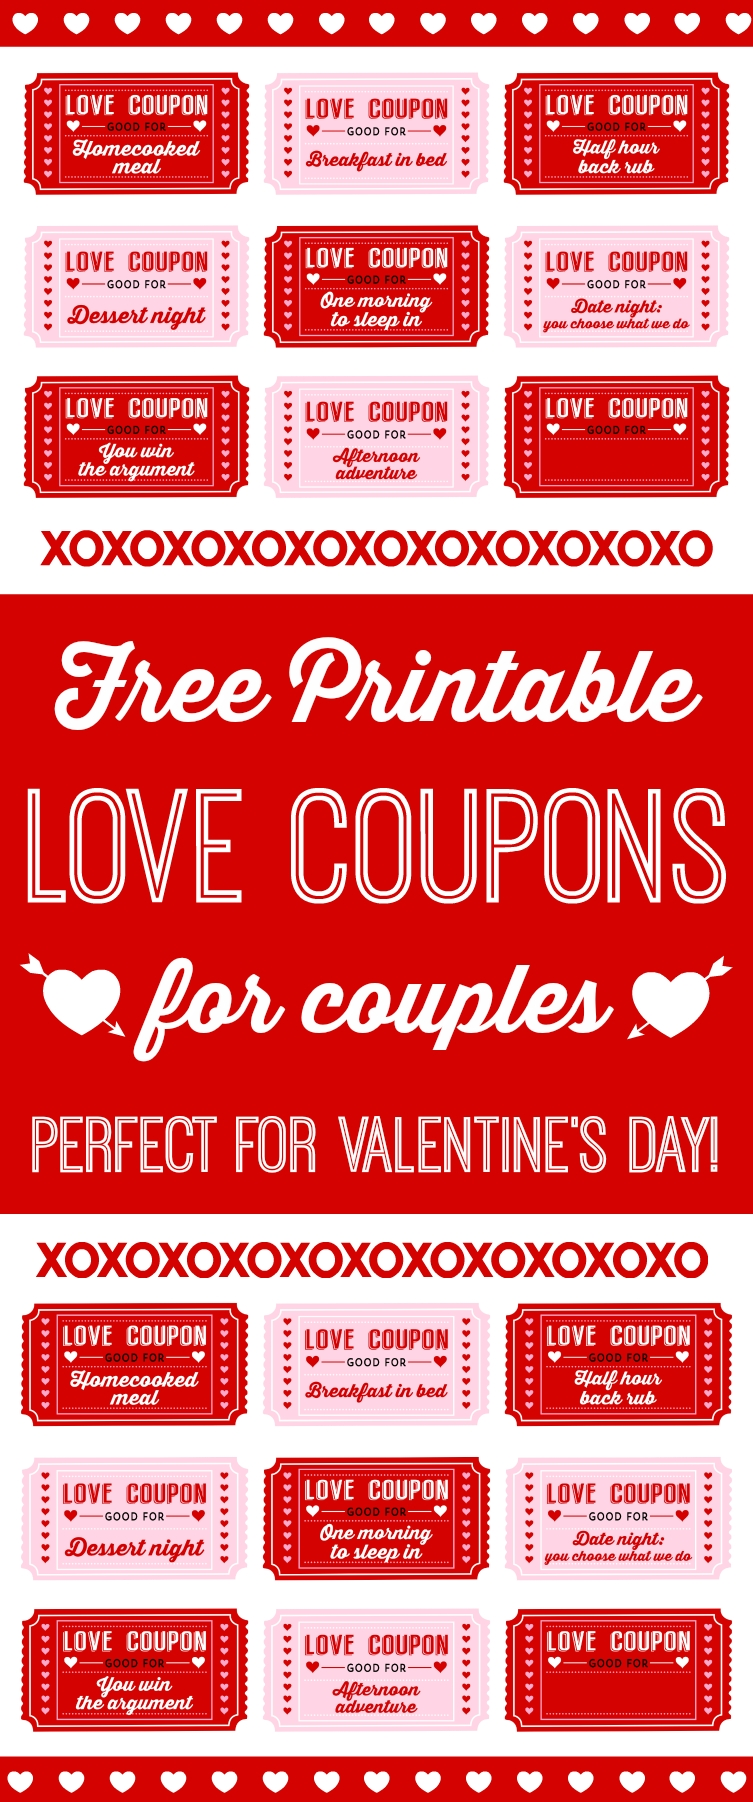 10 Stylish Love Coupon Ideas For Her free printable love coupons for couples on valentines day catch 1 2021